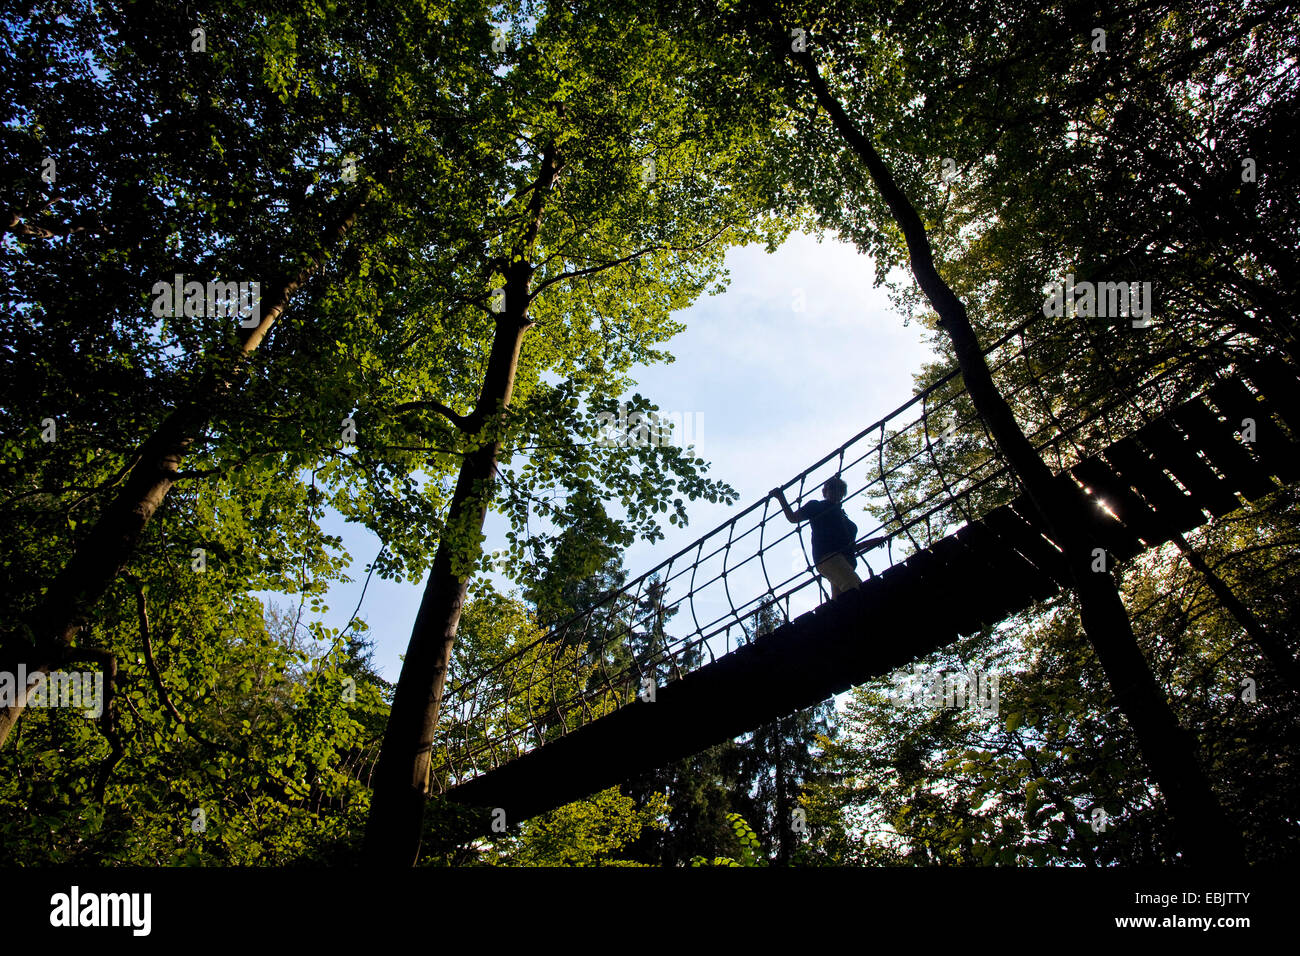 woman on the swaying event suspension bridge at the Rothaarsteig at the village Kuehhude, Germany, North Rhine-Westphalia, - Stock Image